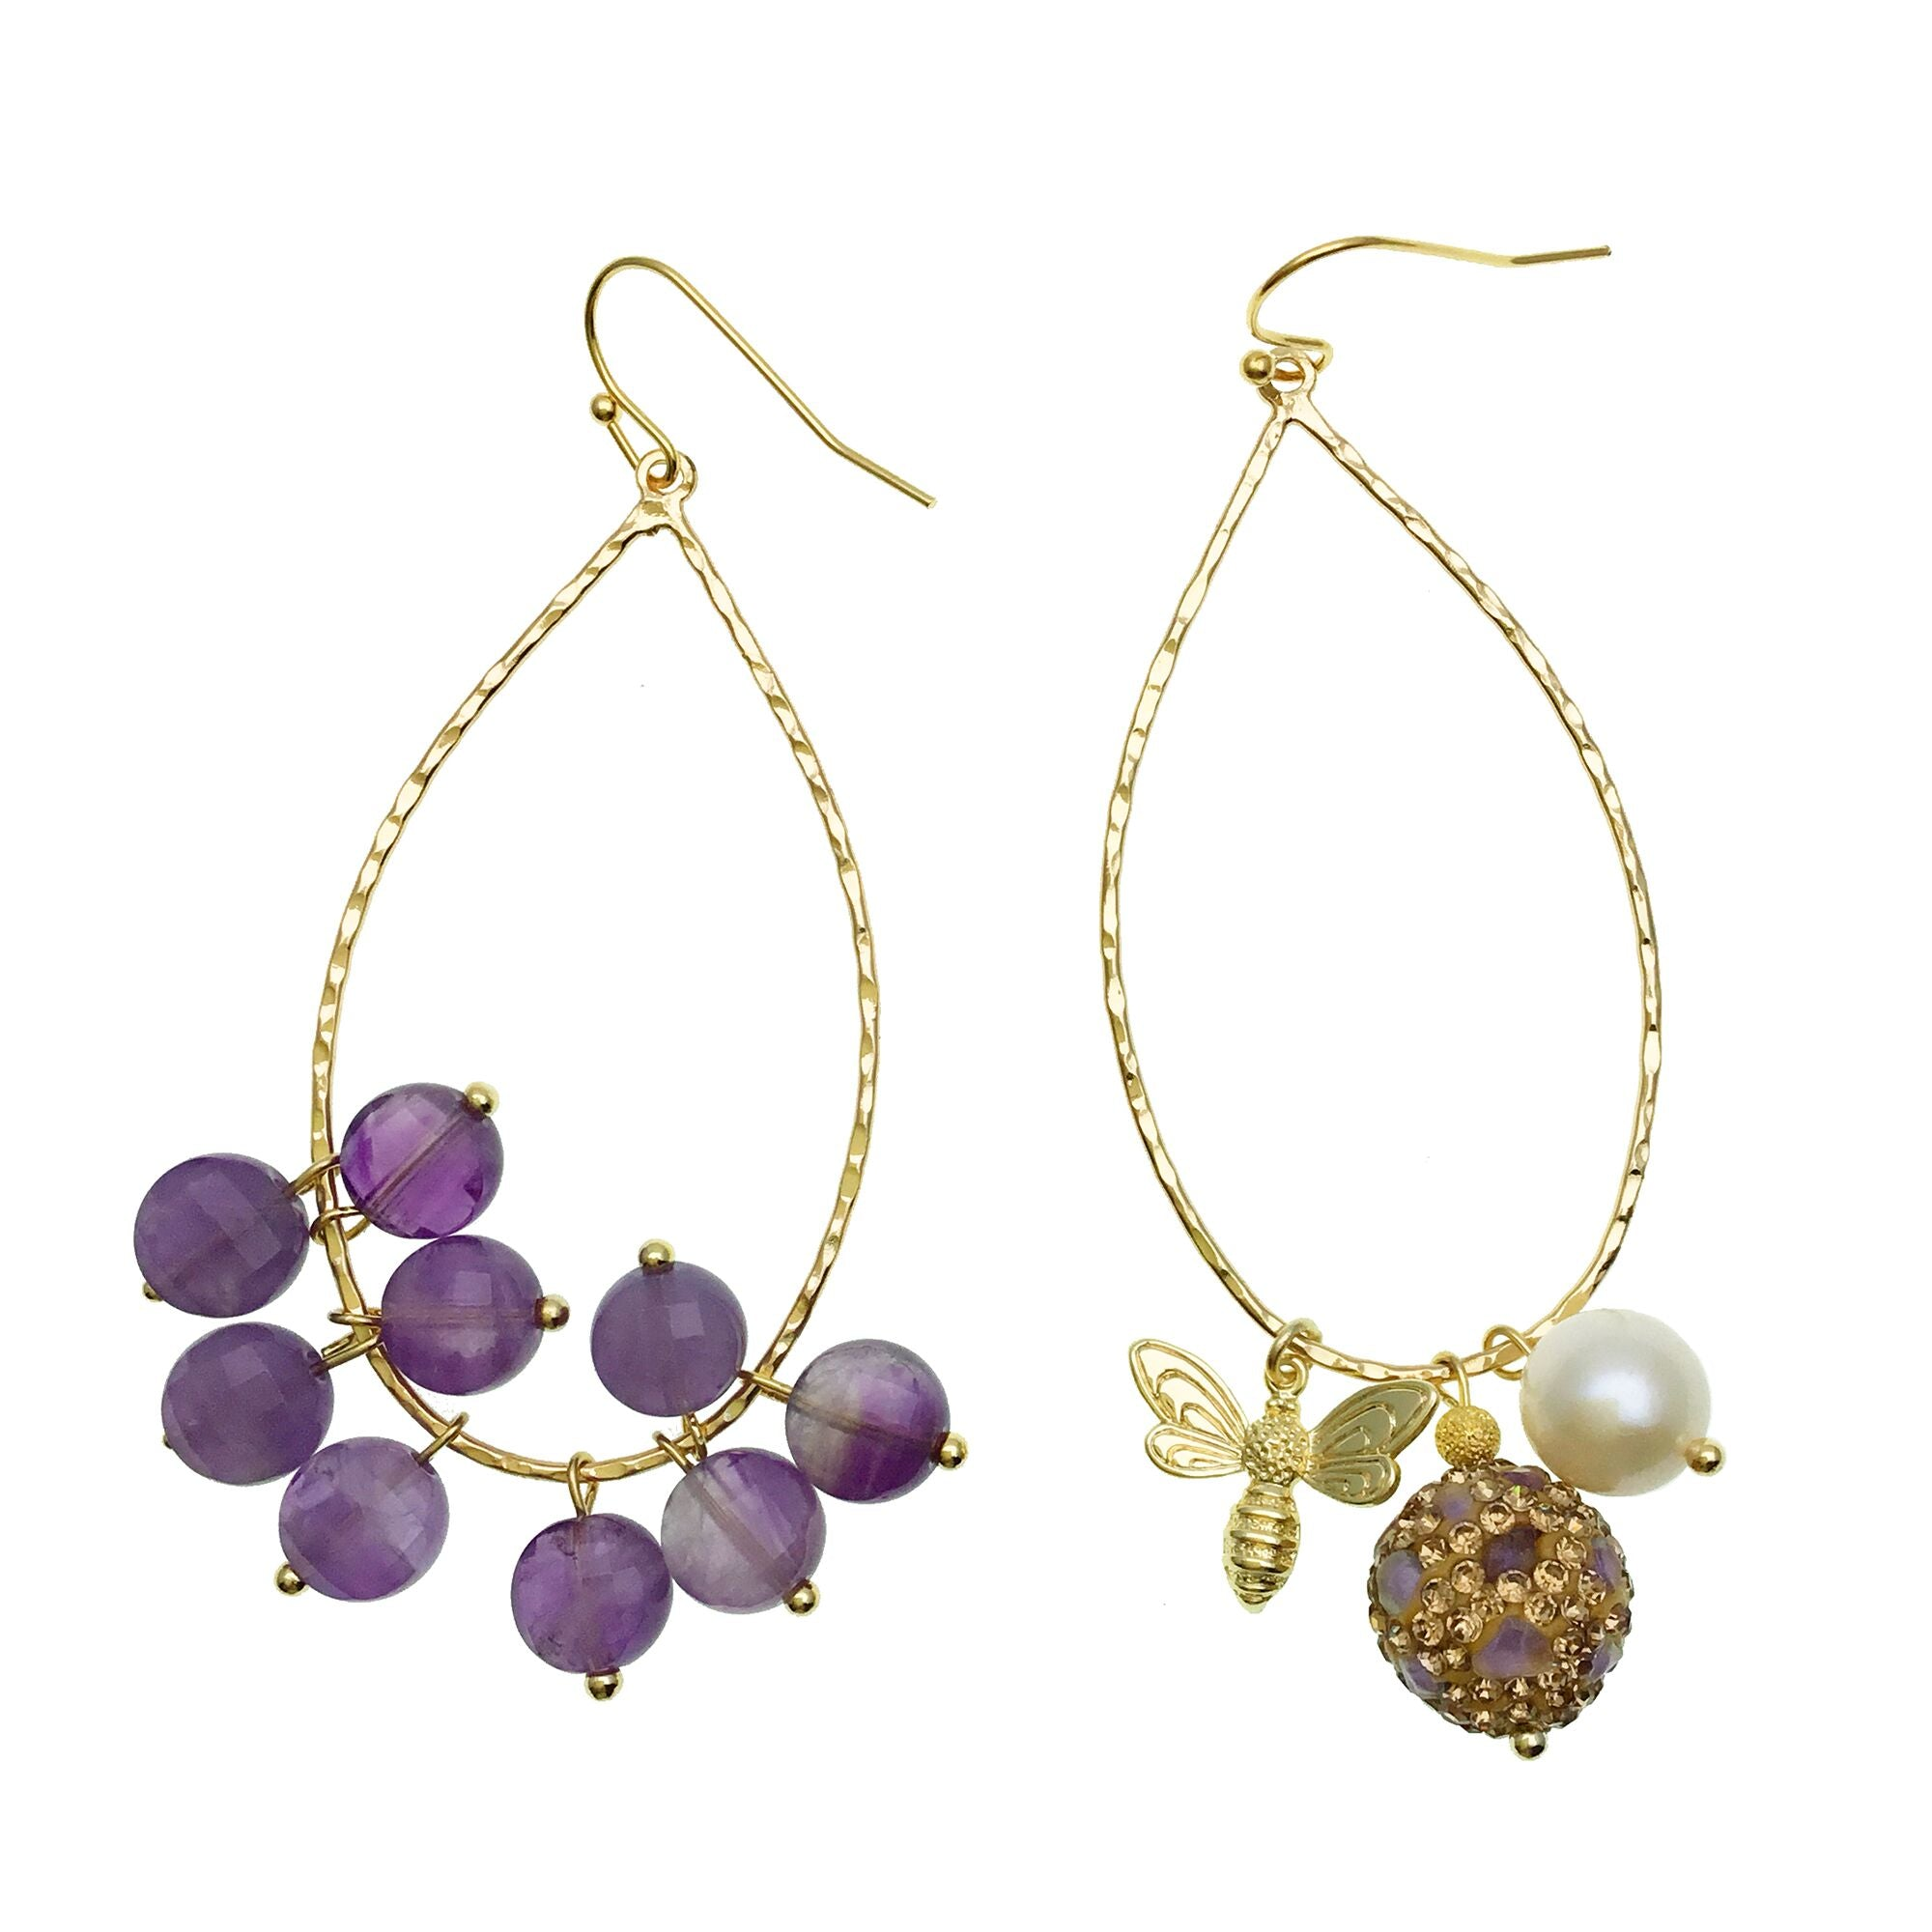 Amethyst and Gold Charms Hoop Earrings - Shopidpearl